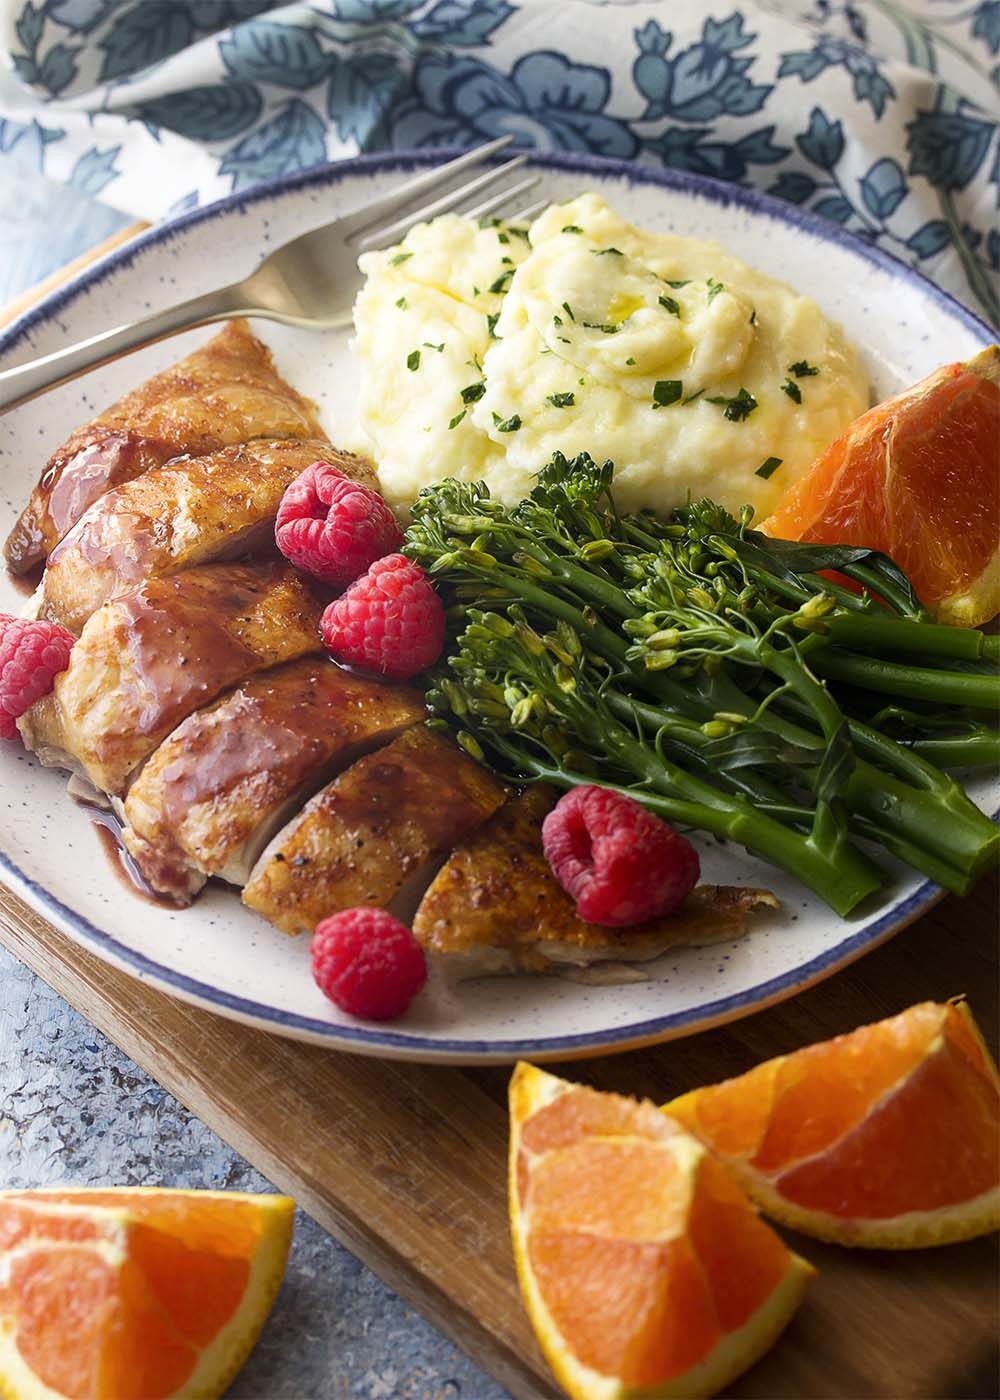 Sliced crispy duck breast on a plate with mashed potatoes, broccolini, oranges, and raspberries.